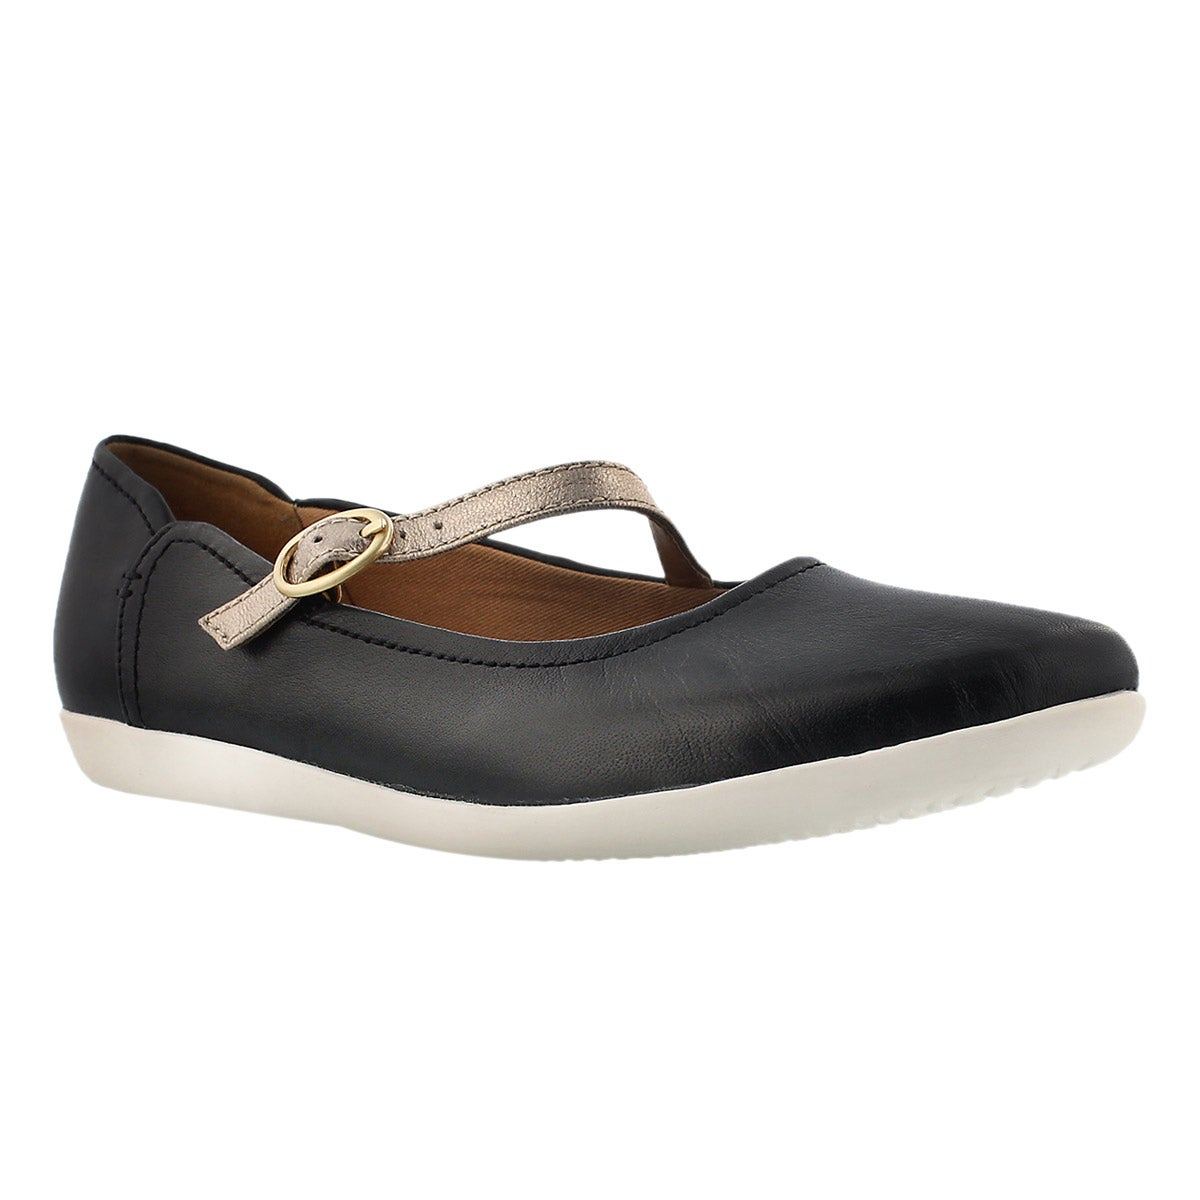 Chaussures Mary Jane HELINA AMO, noir, femmes